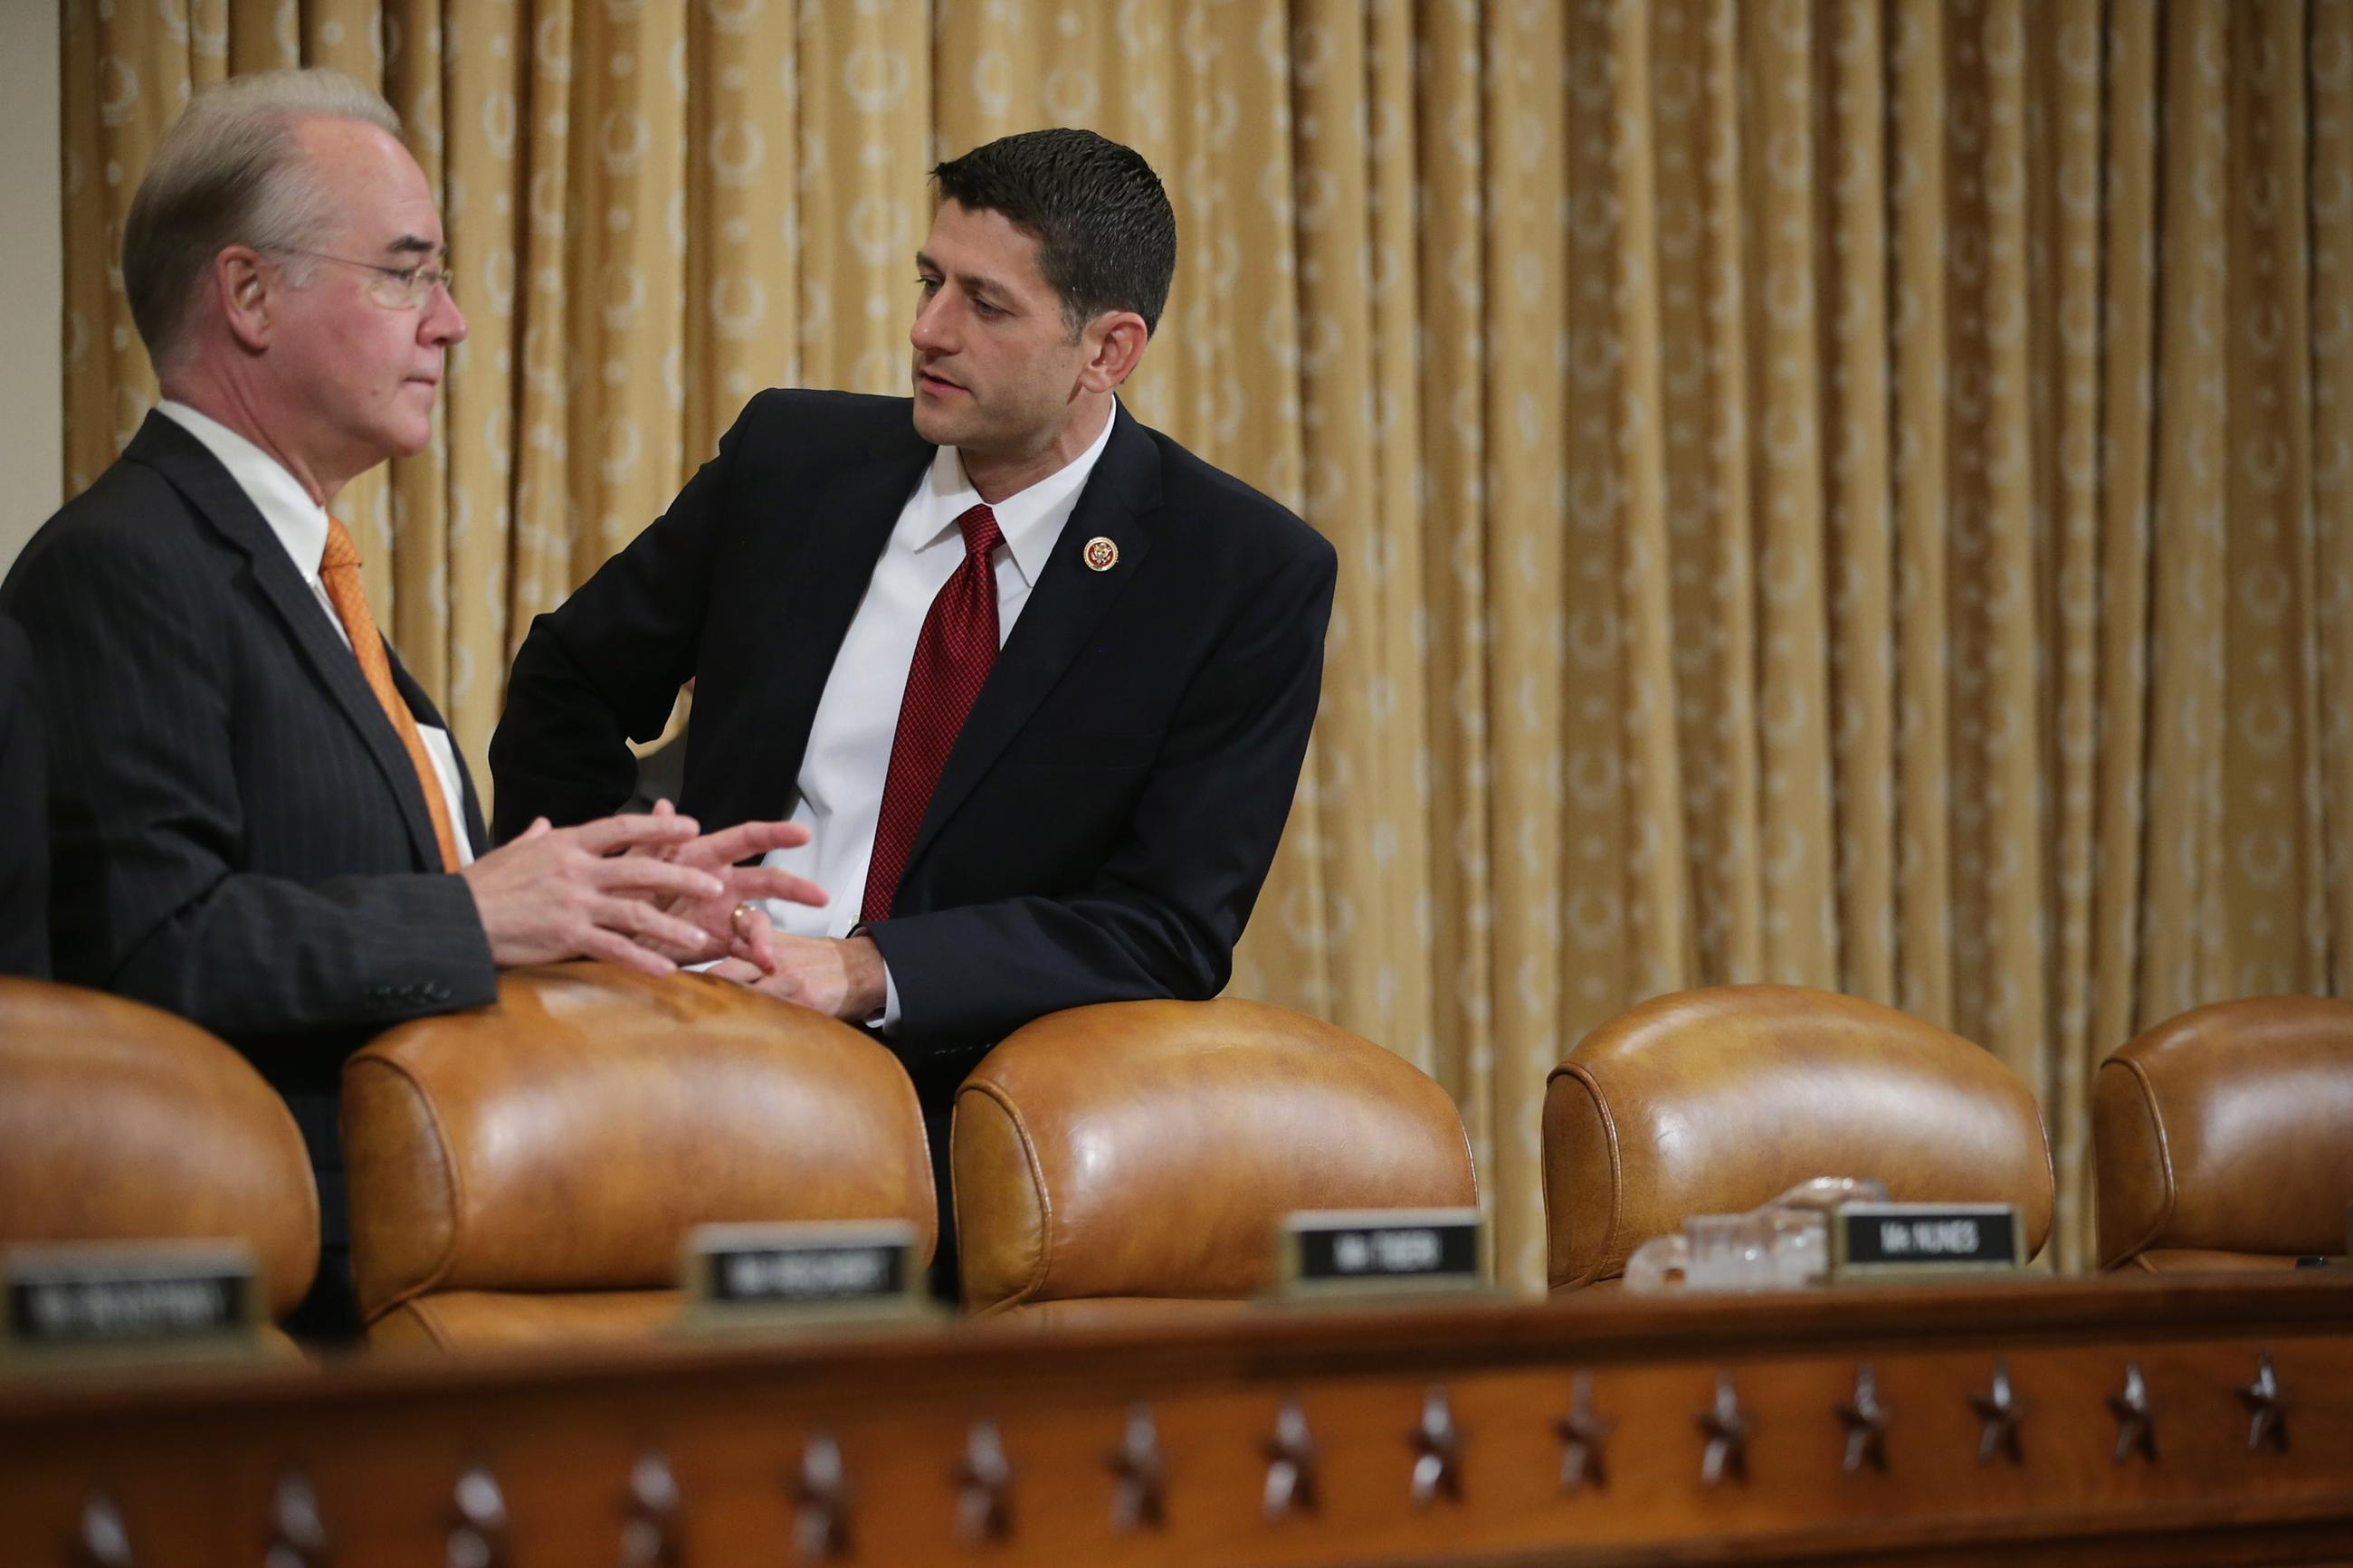 Republicans Push Plan to Renege on Medicaid Promise